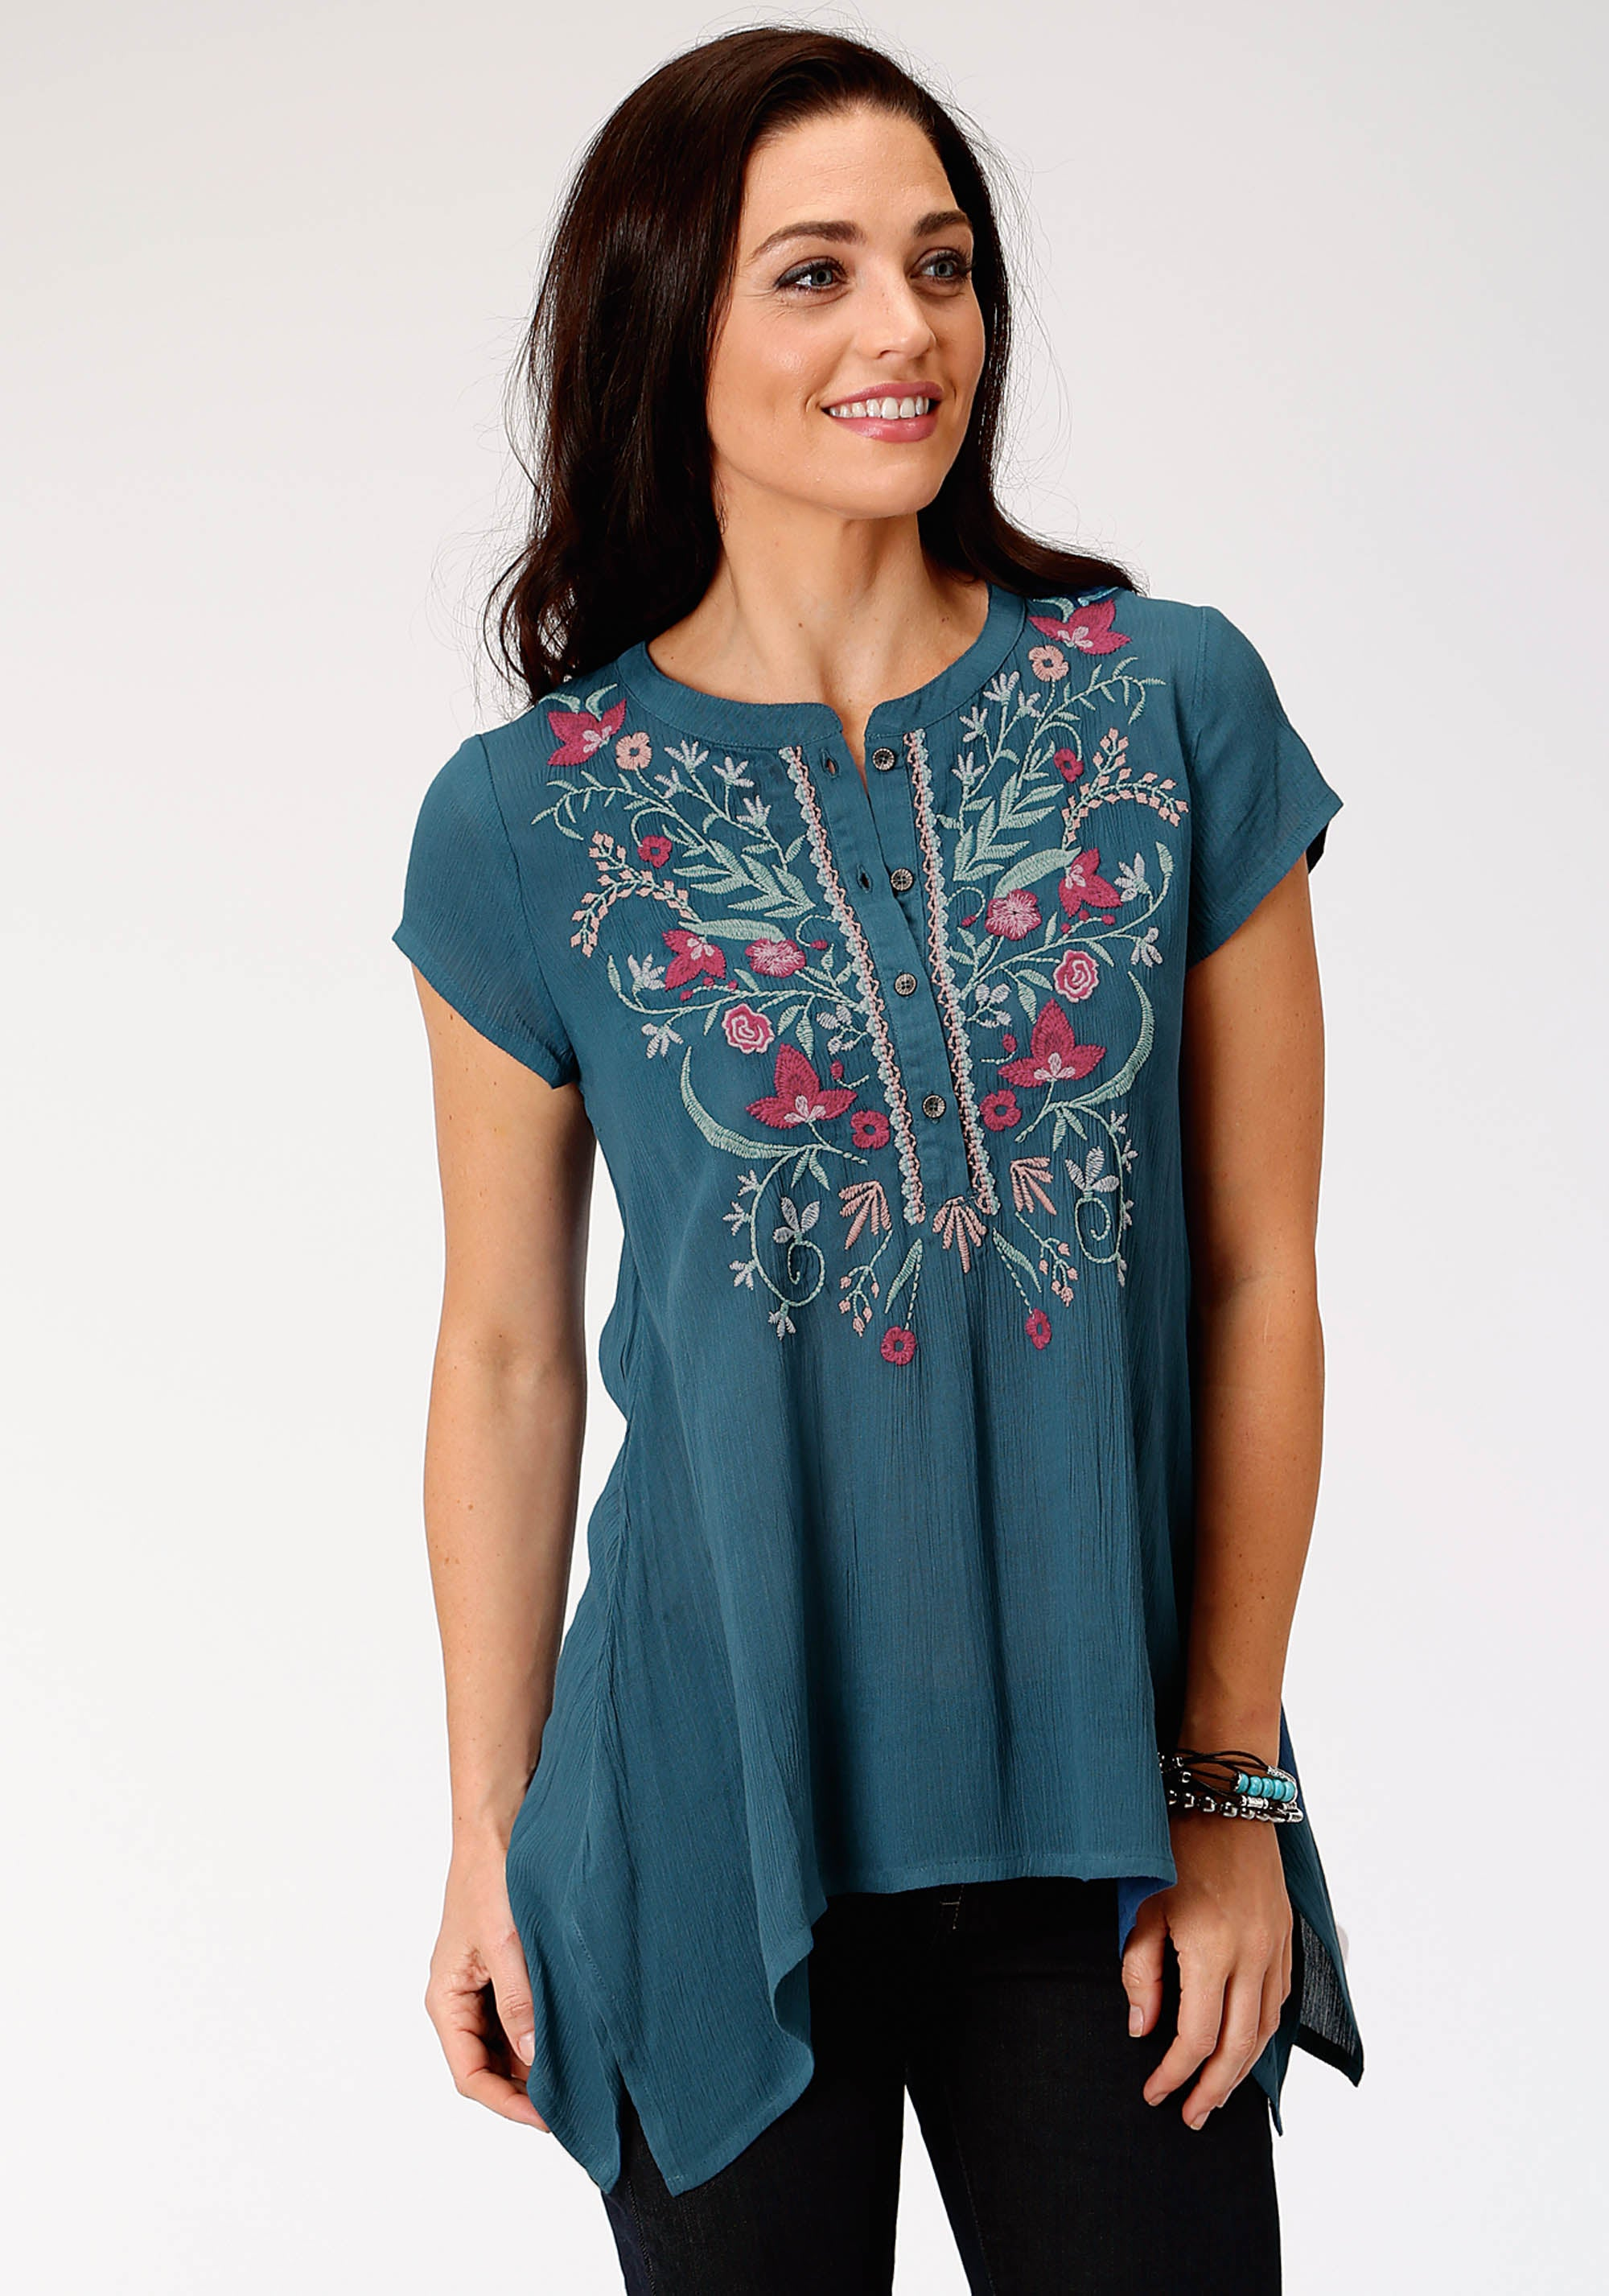 ROPER WOMENS BLUE 3538 RAYON CREPE SS TUNIC W/EMBROIDERY STUDIO WEST- BLUE ORCHID SHORT SLEEVE